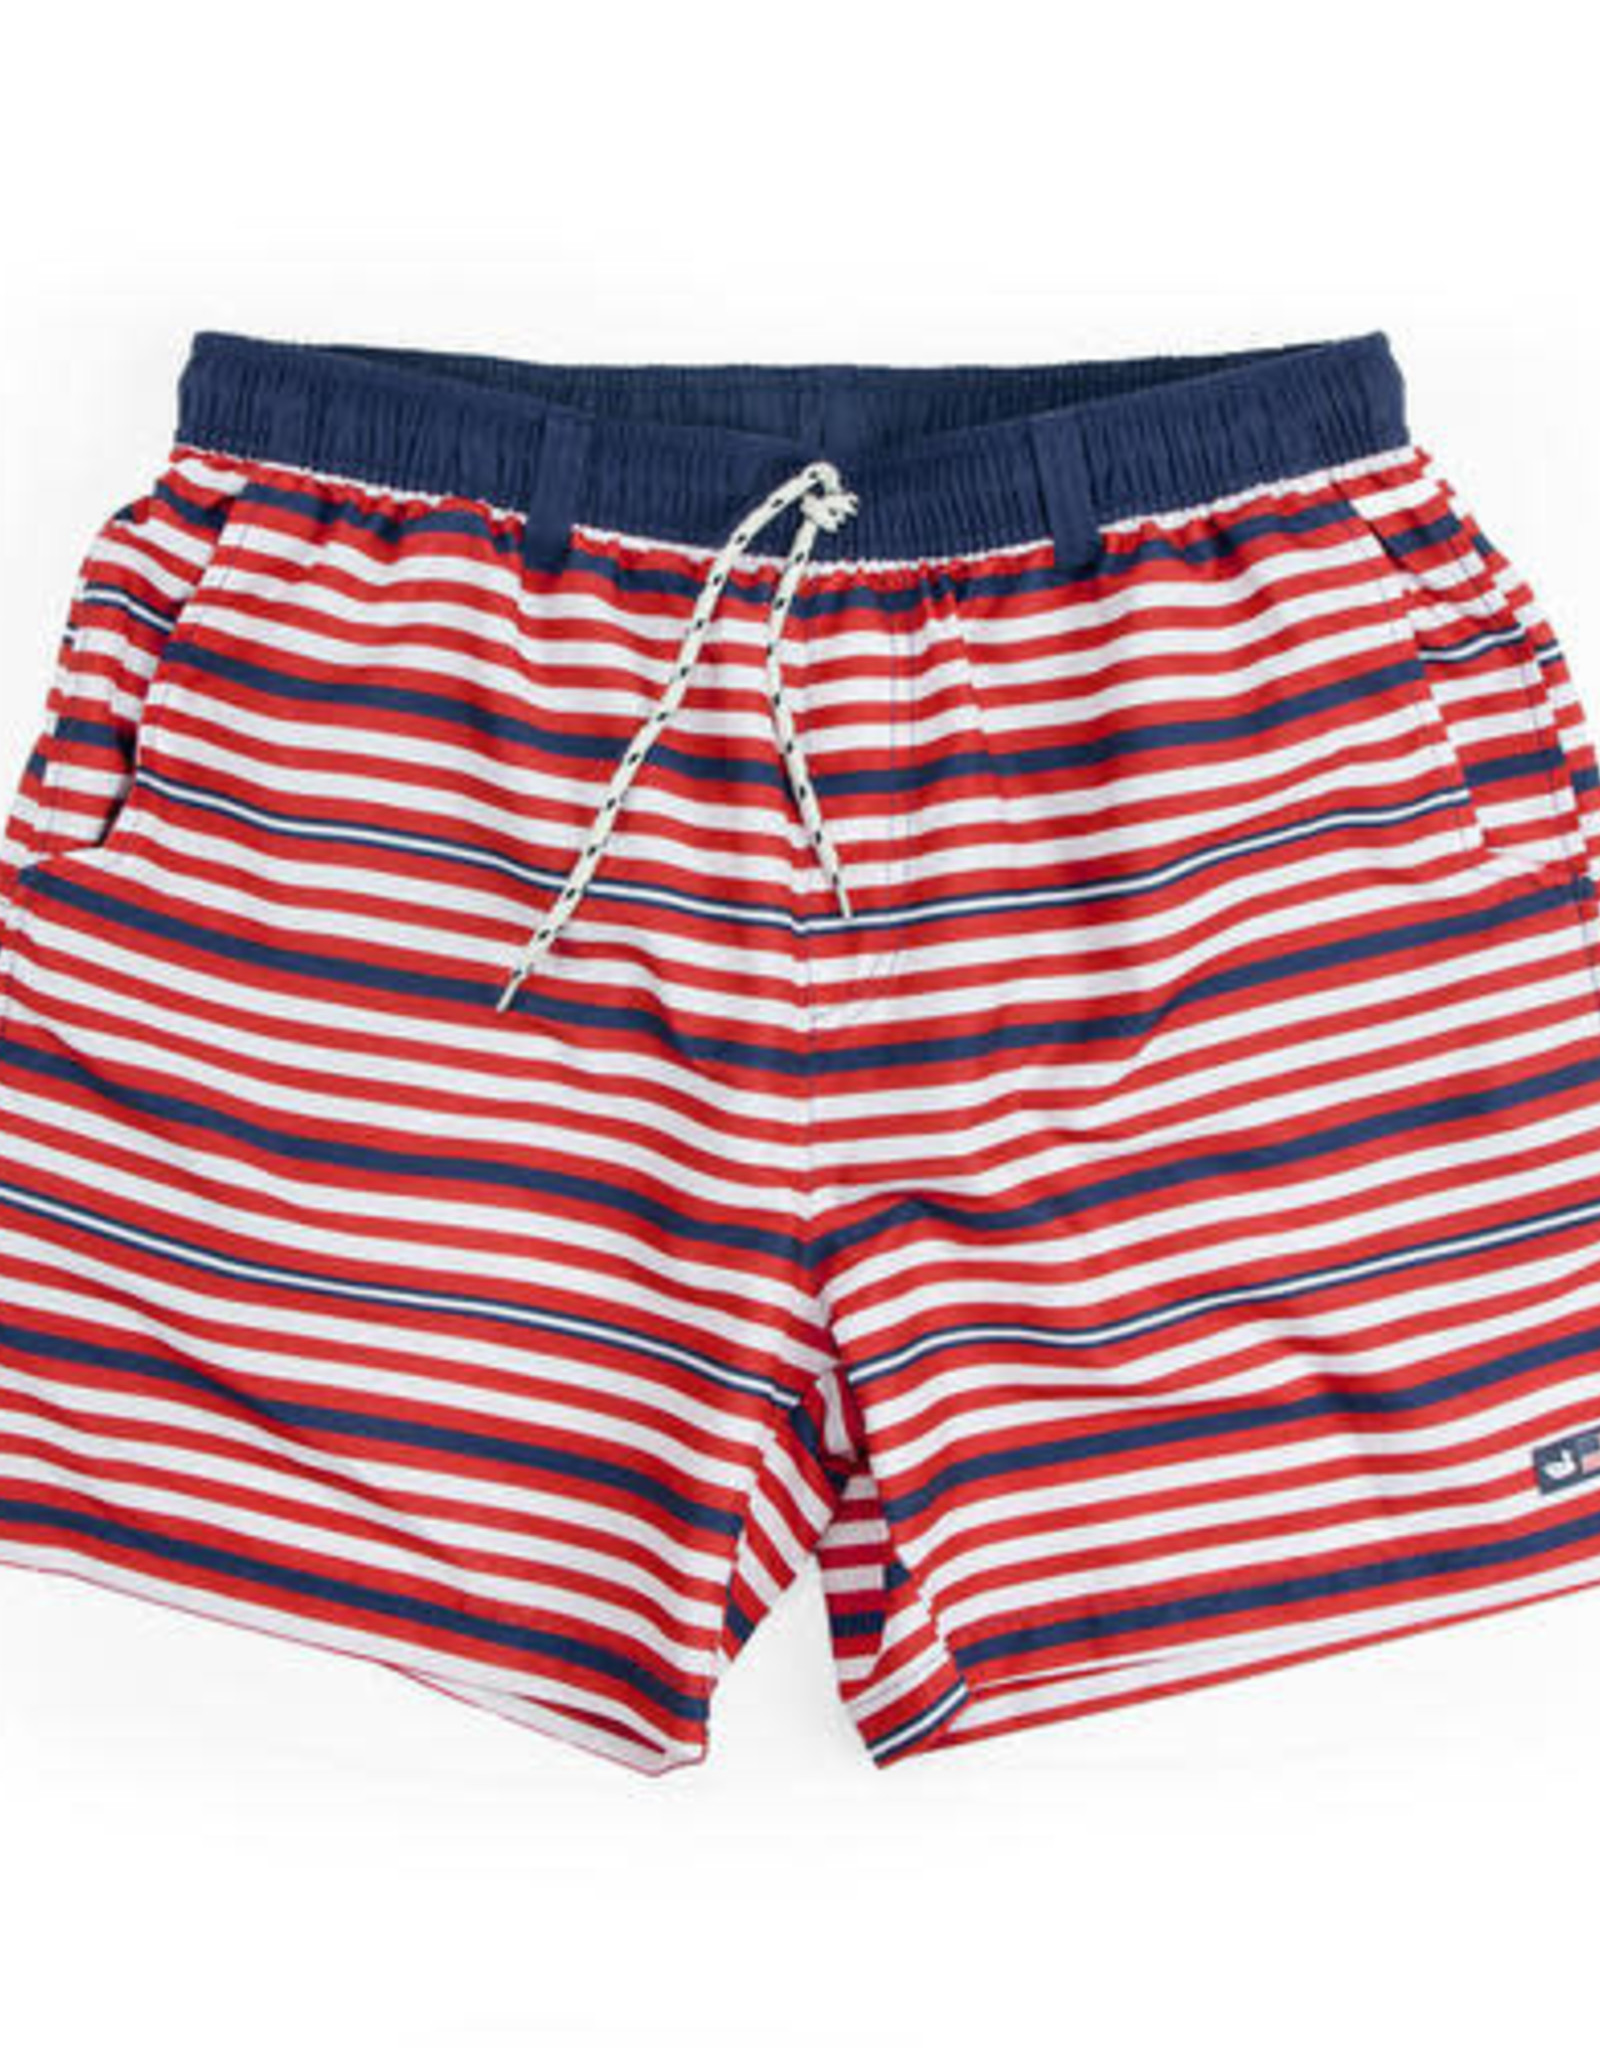 Southern Marsh DKT - Dockside Swimtrunk